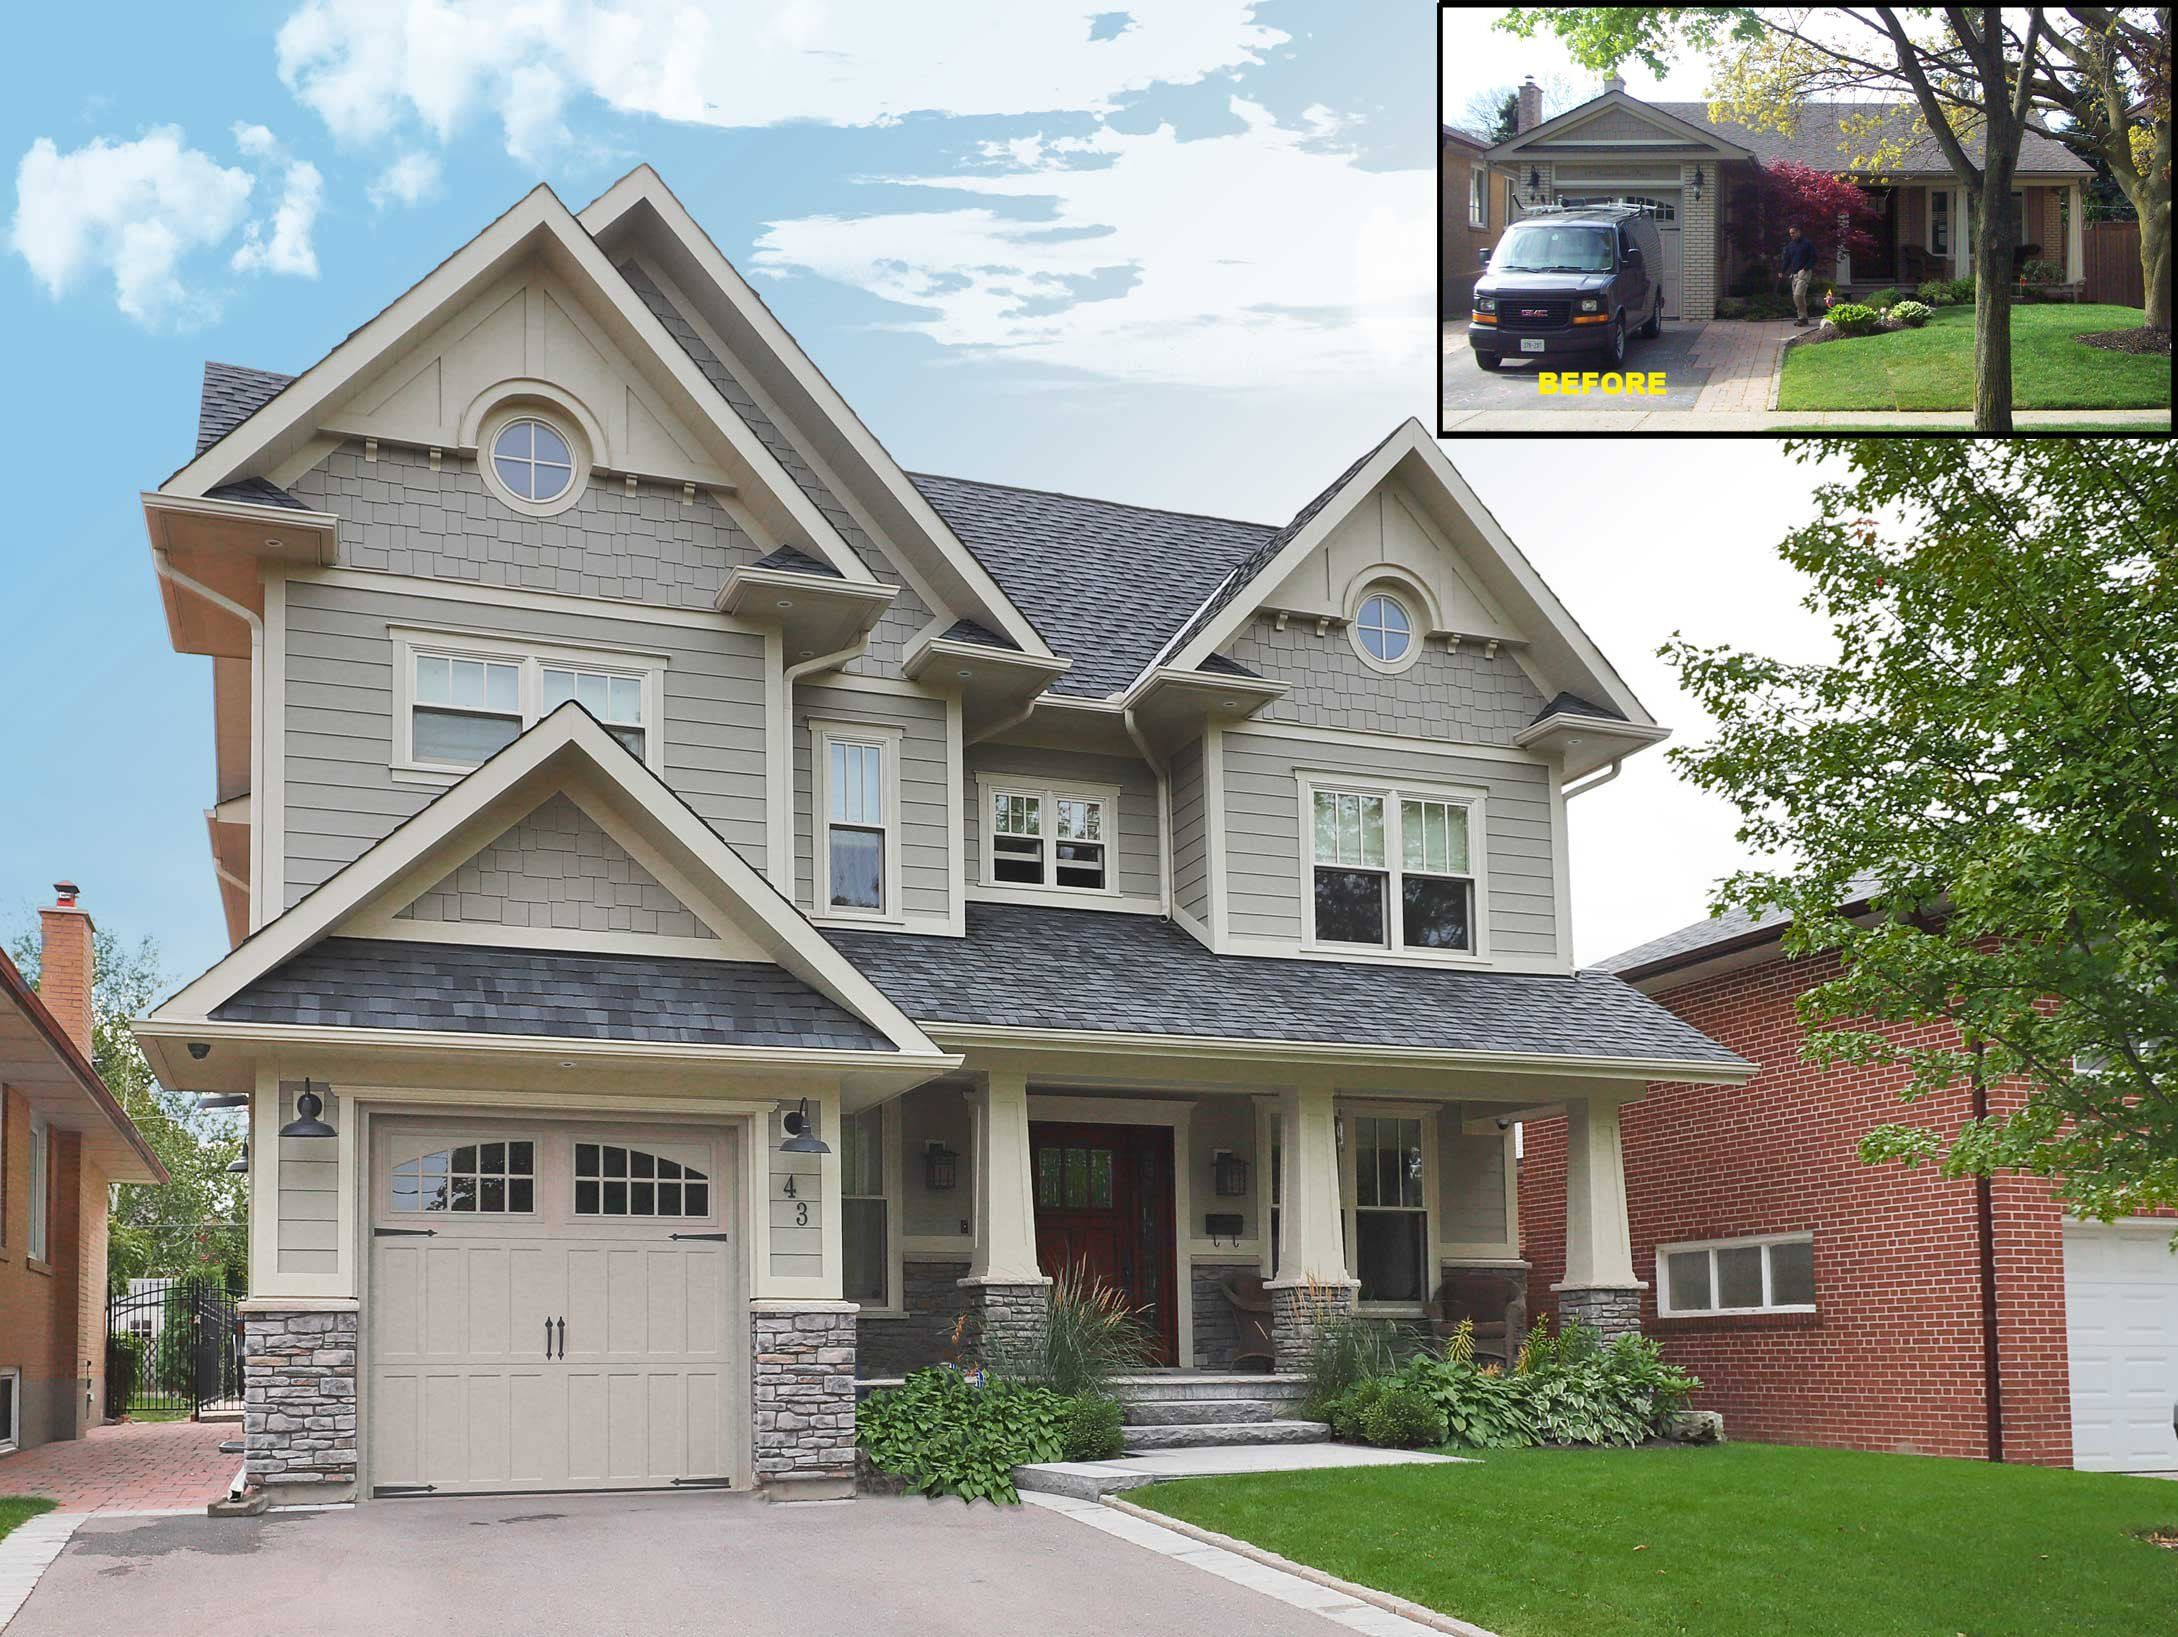 Before After Toronto Modular Home Additions In 2020 Home Additions Modular Homes Home